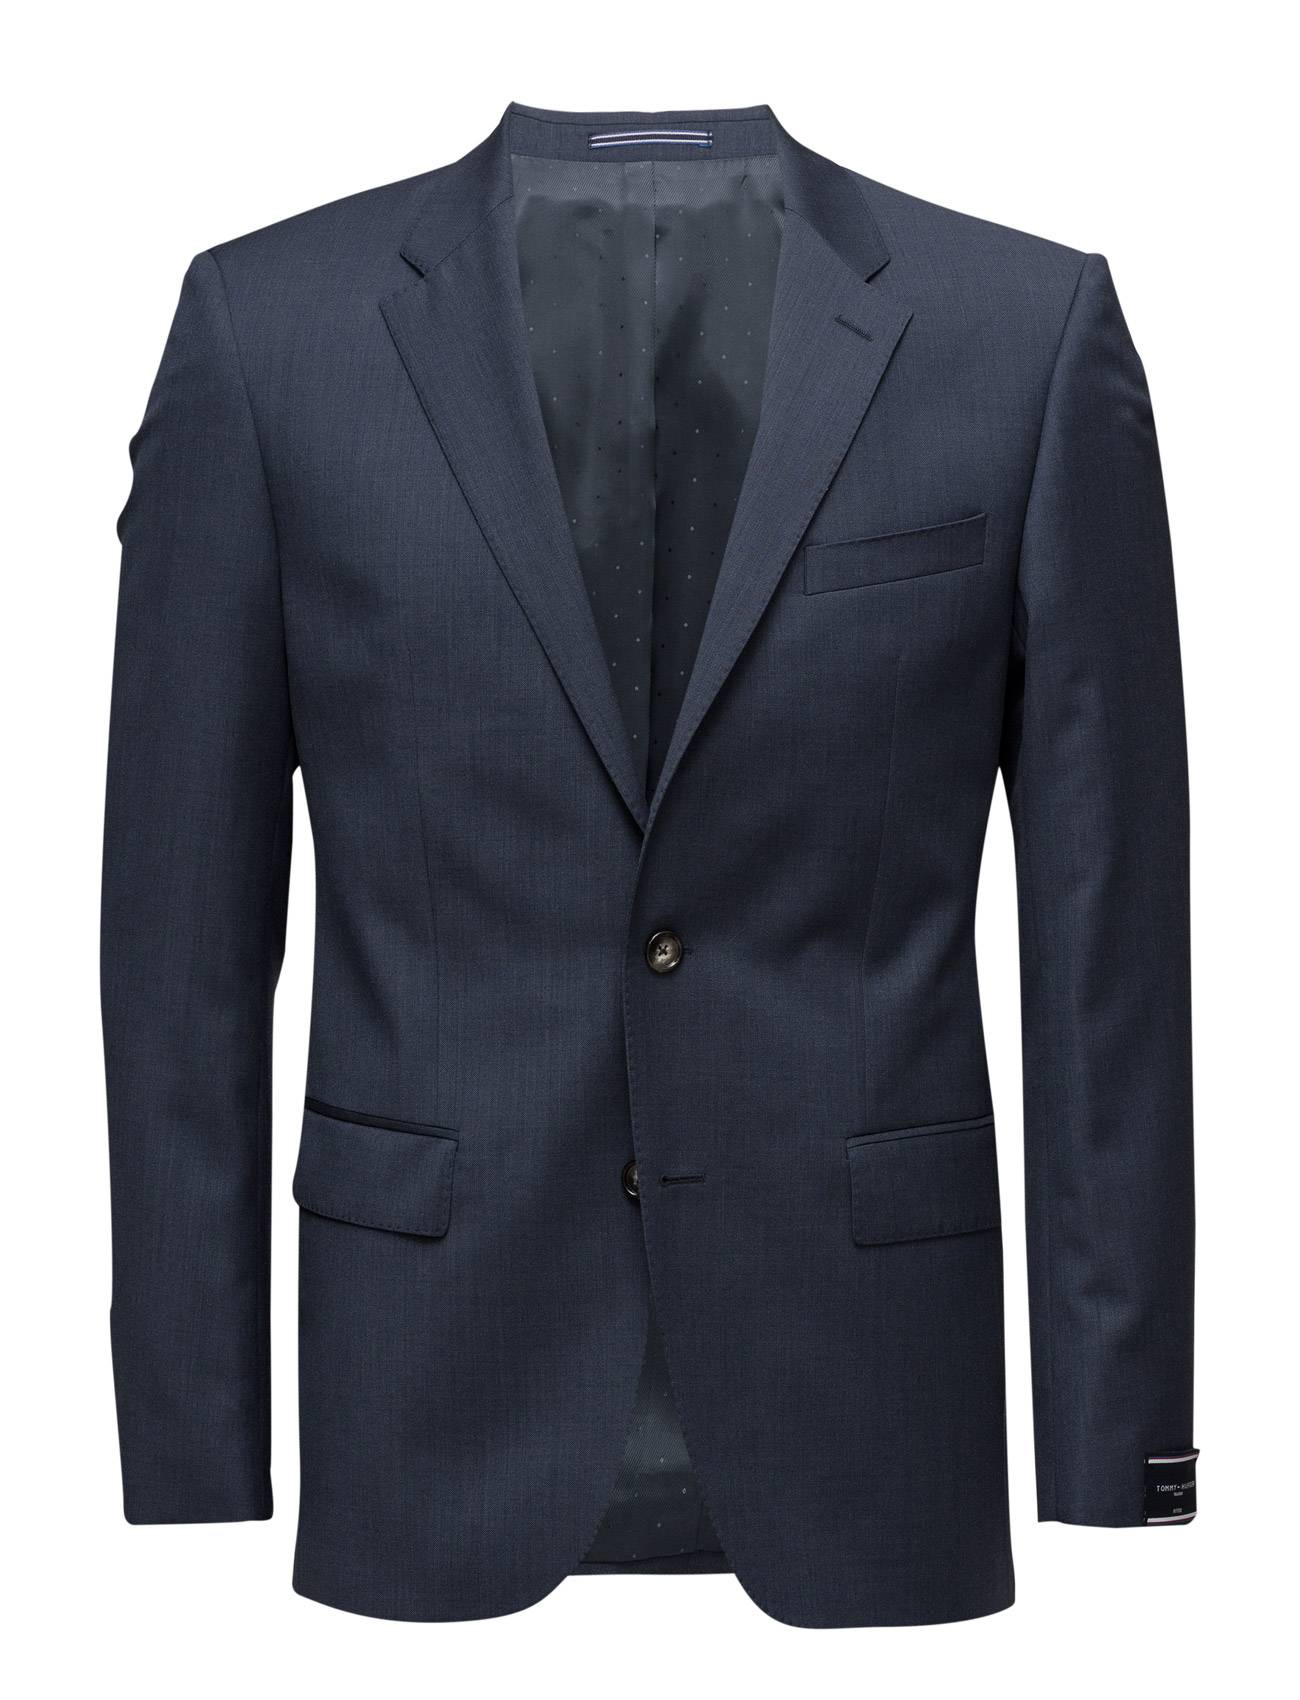 Tommy Hilfiger Tailored Butch Stssld99003